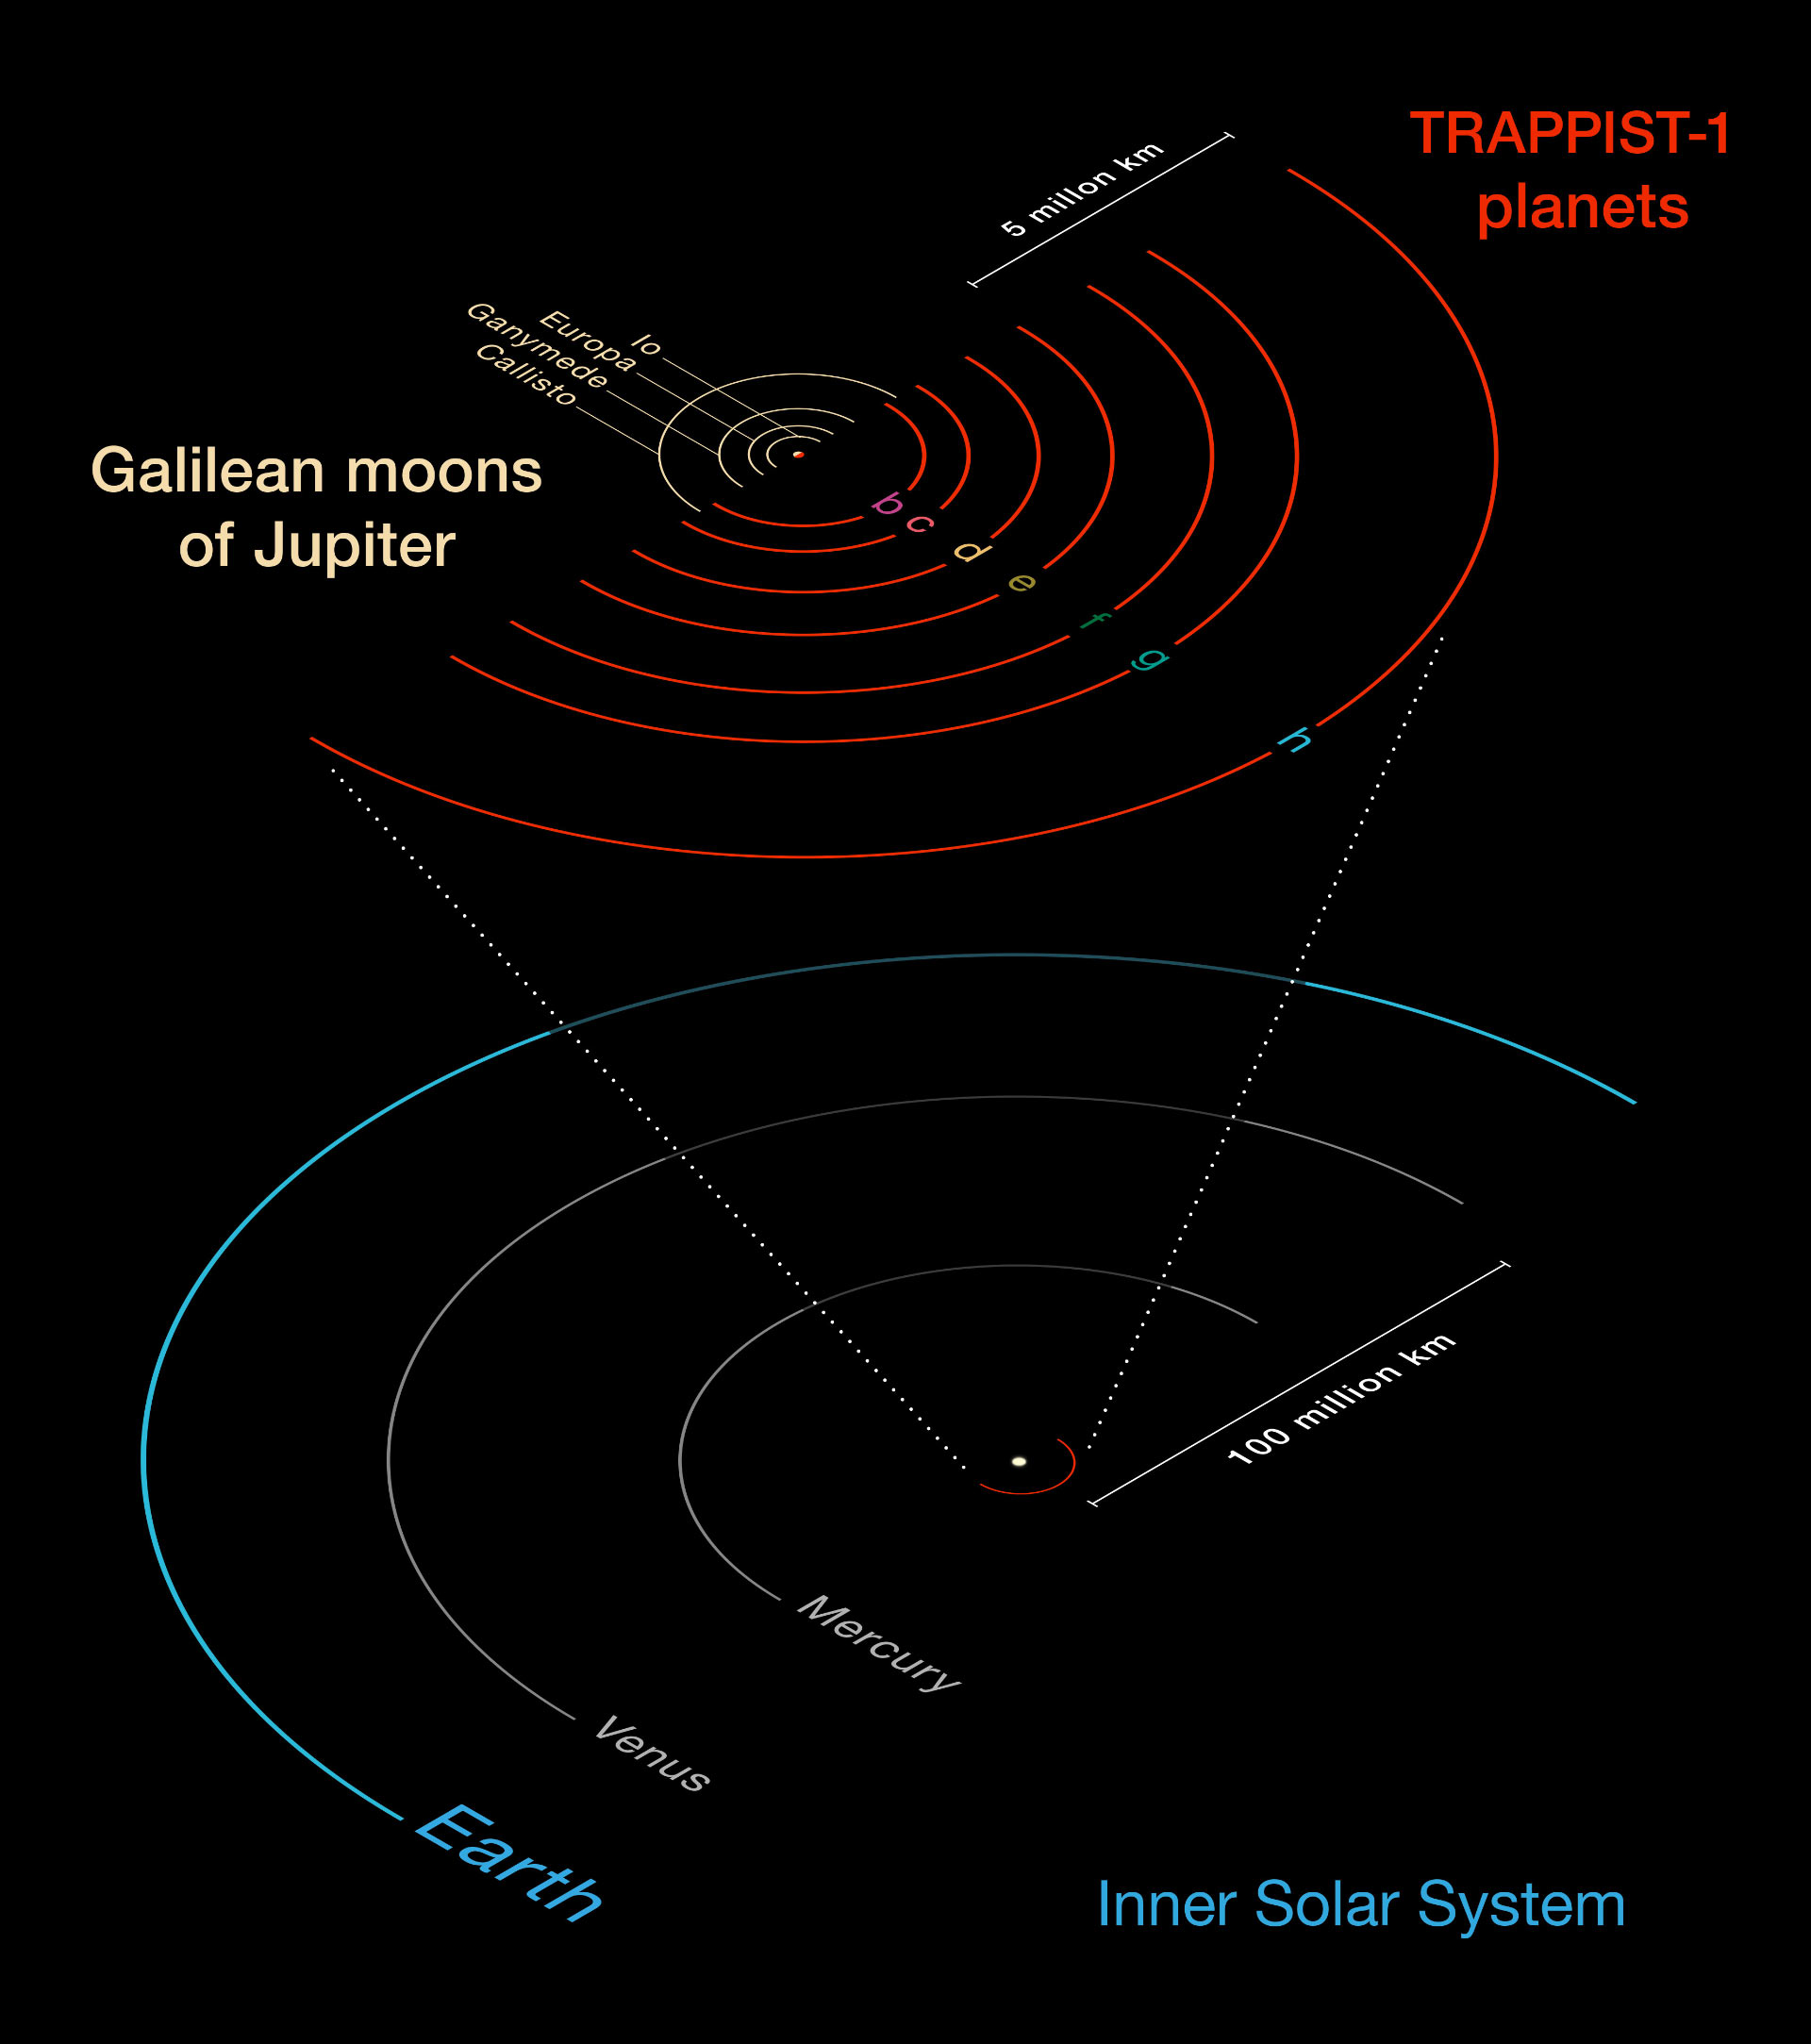 Trappist 1 nearby dwarf star hosts seven earth size exoplanets this diagram compares the orbits of trappist 1 planets with the galilean moons of jupiter pooptronica Gallery